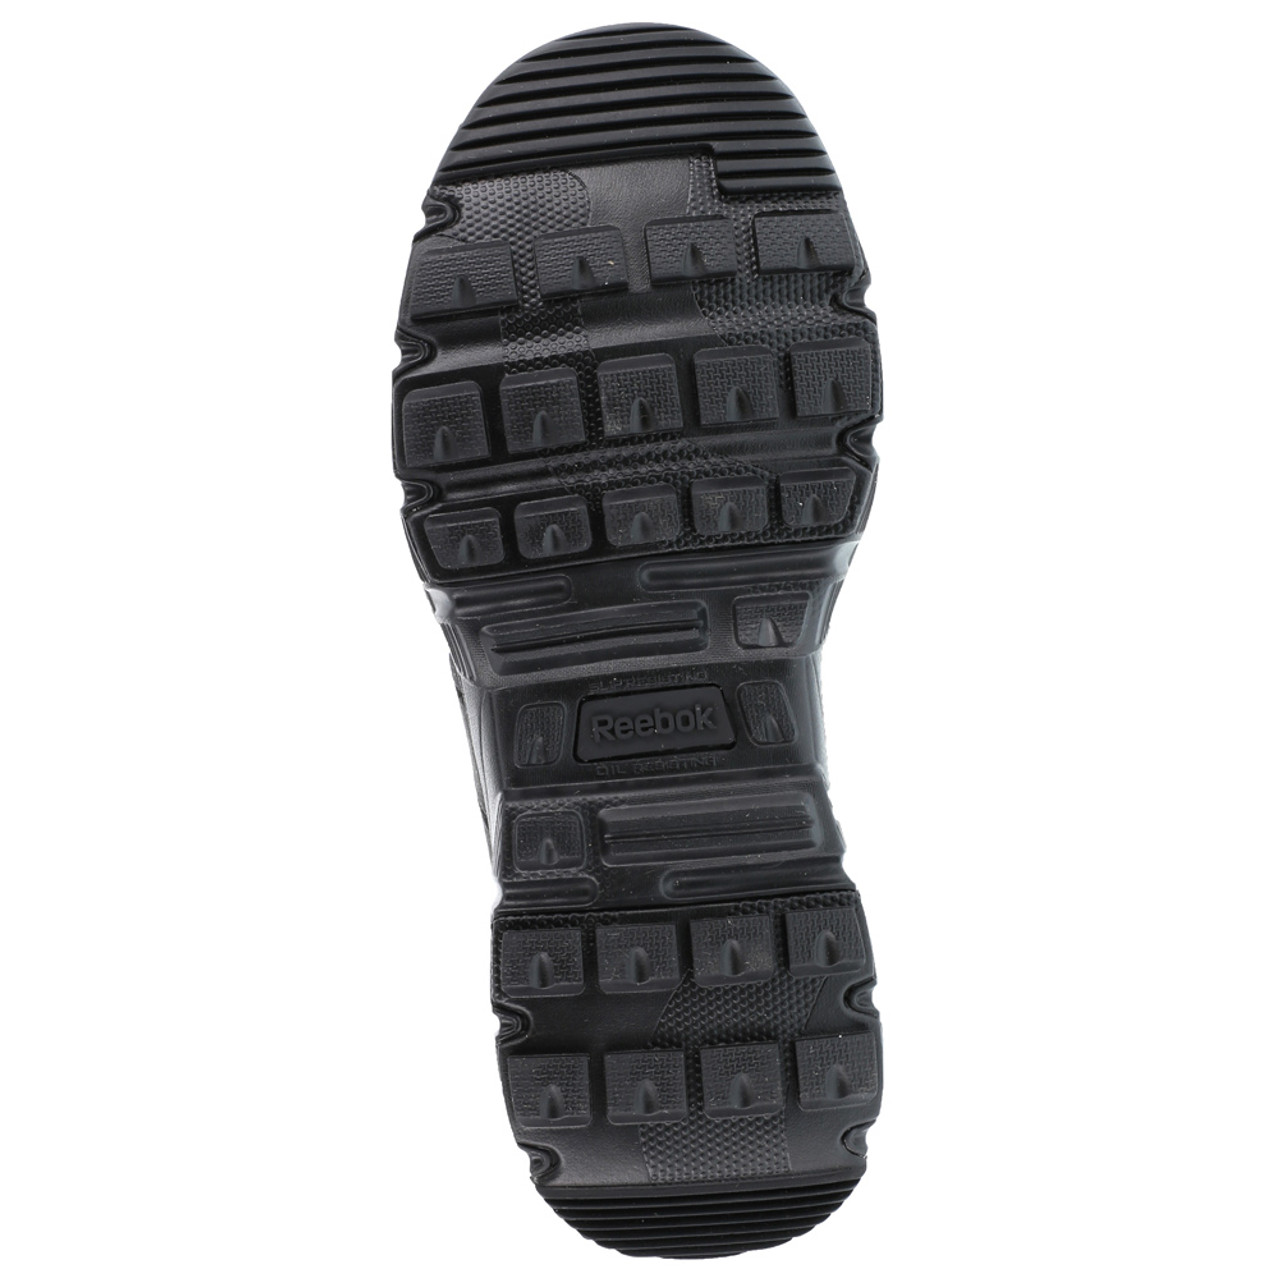 b2ad64ce6fa160 ... REEBOK Mens Dauntless 8in Ultra-Light Black Tactical Boots with Side  Zipper (RB8720)